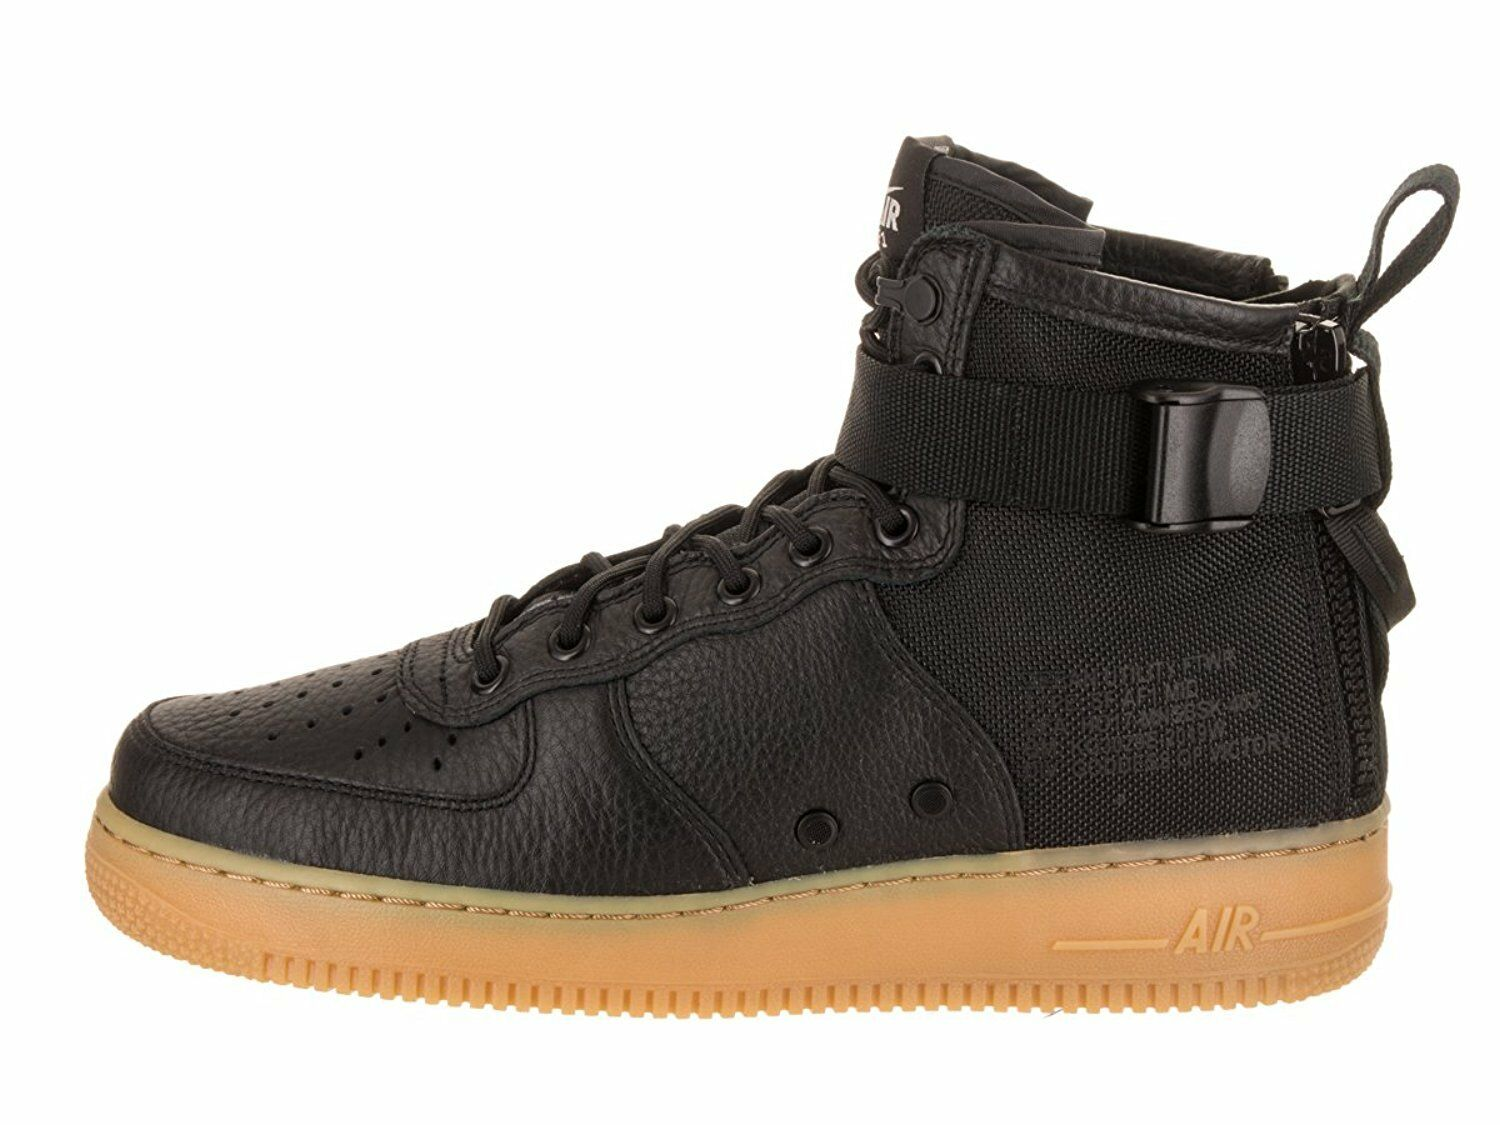 Nike SF Air Force 1 Mid Black Black-Gum Light Brown (917753 003)